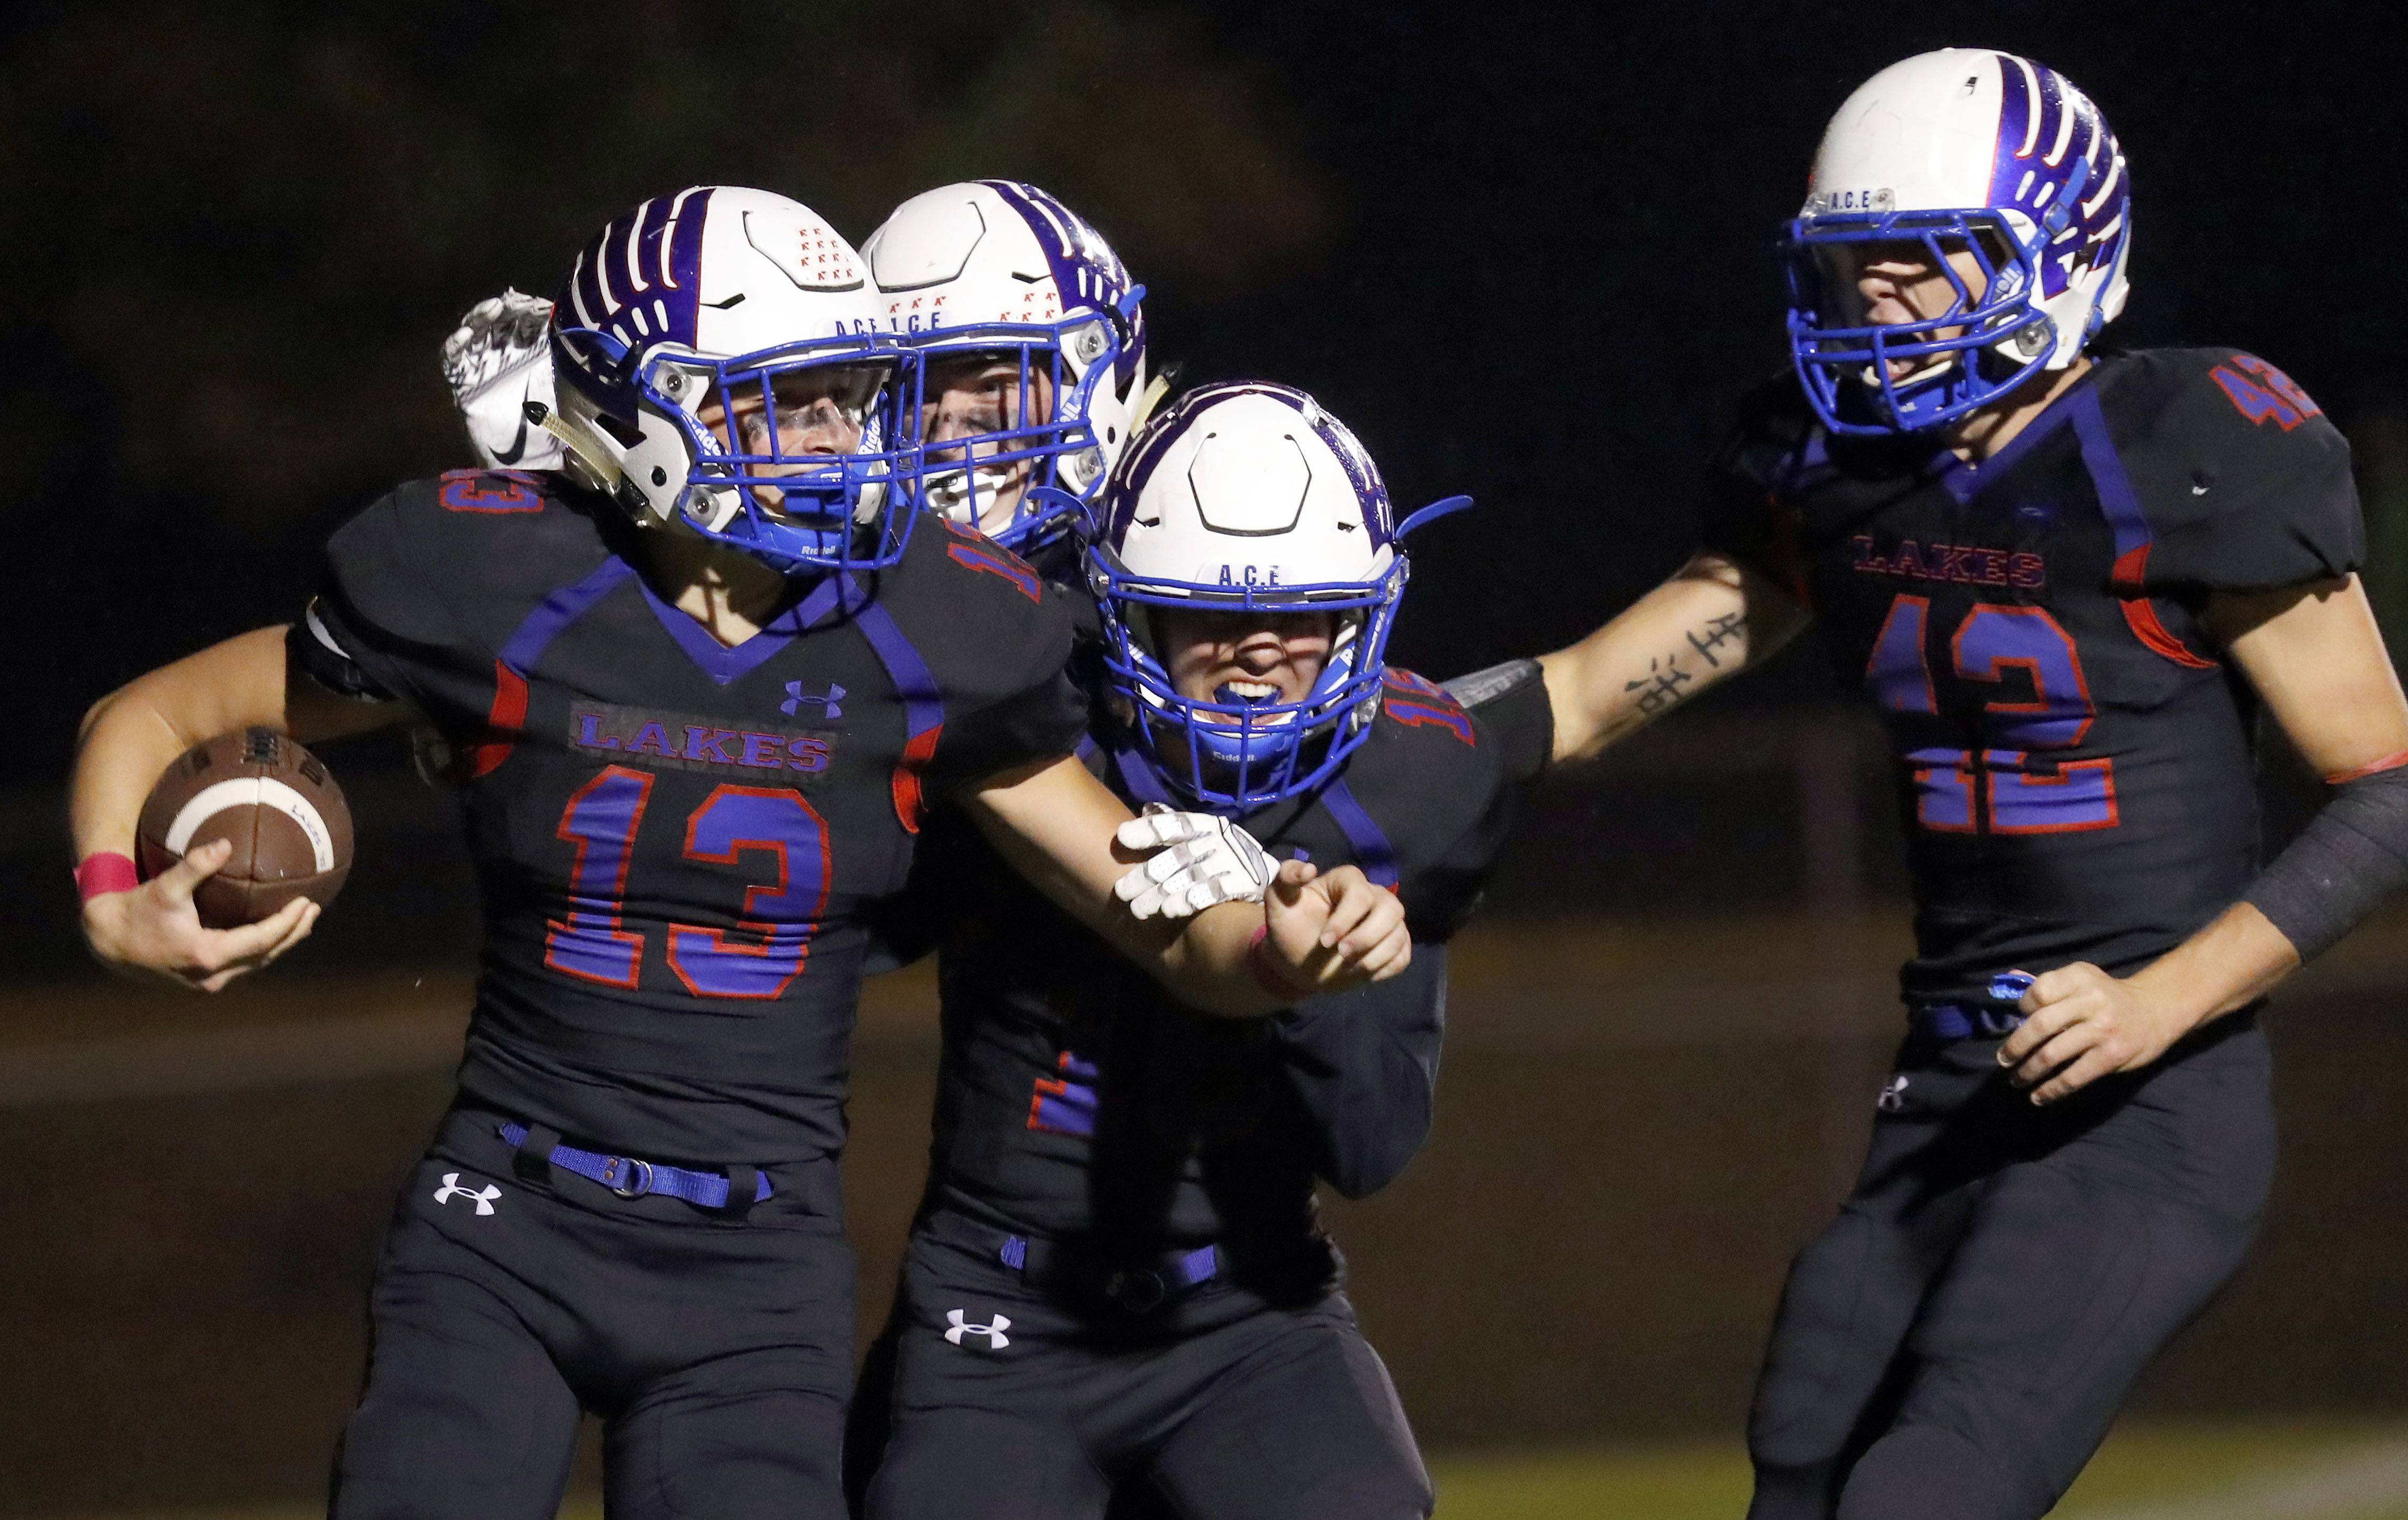 Lakes' players celebrate with Chance Hoeller (13) after he returned a fumble for a touchdown against visiting Antioch on Friday night.